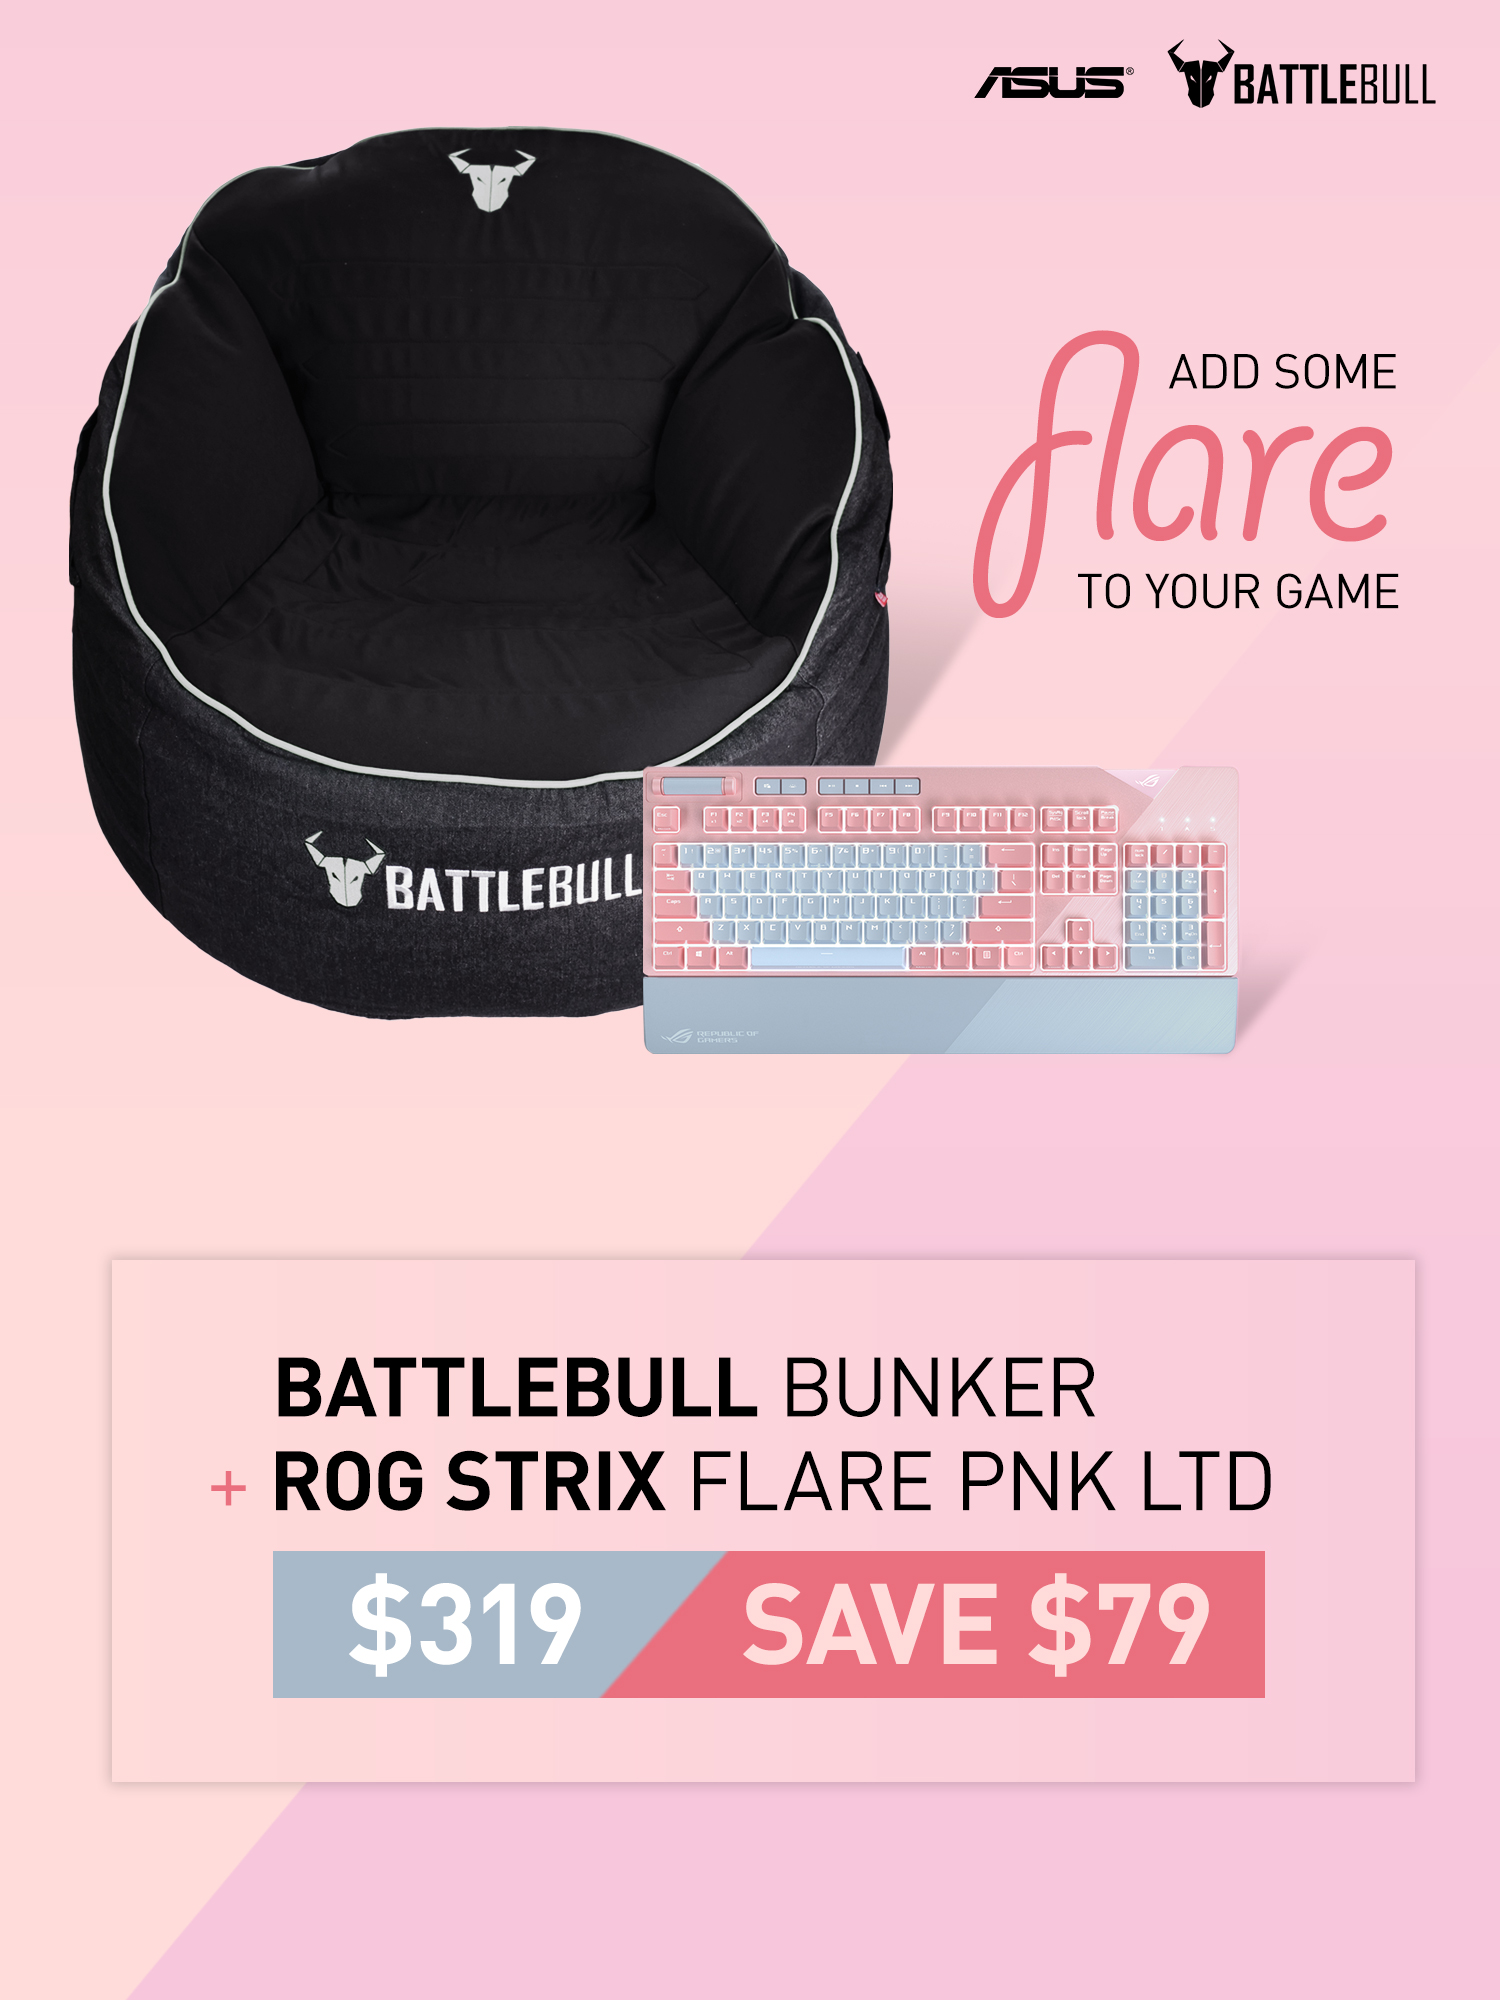 A large marketing image providing additional information about the product ASUS Bunker Flare Bundle Promotion - Additional alt info not provided